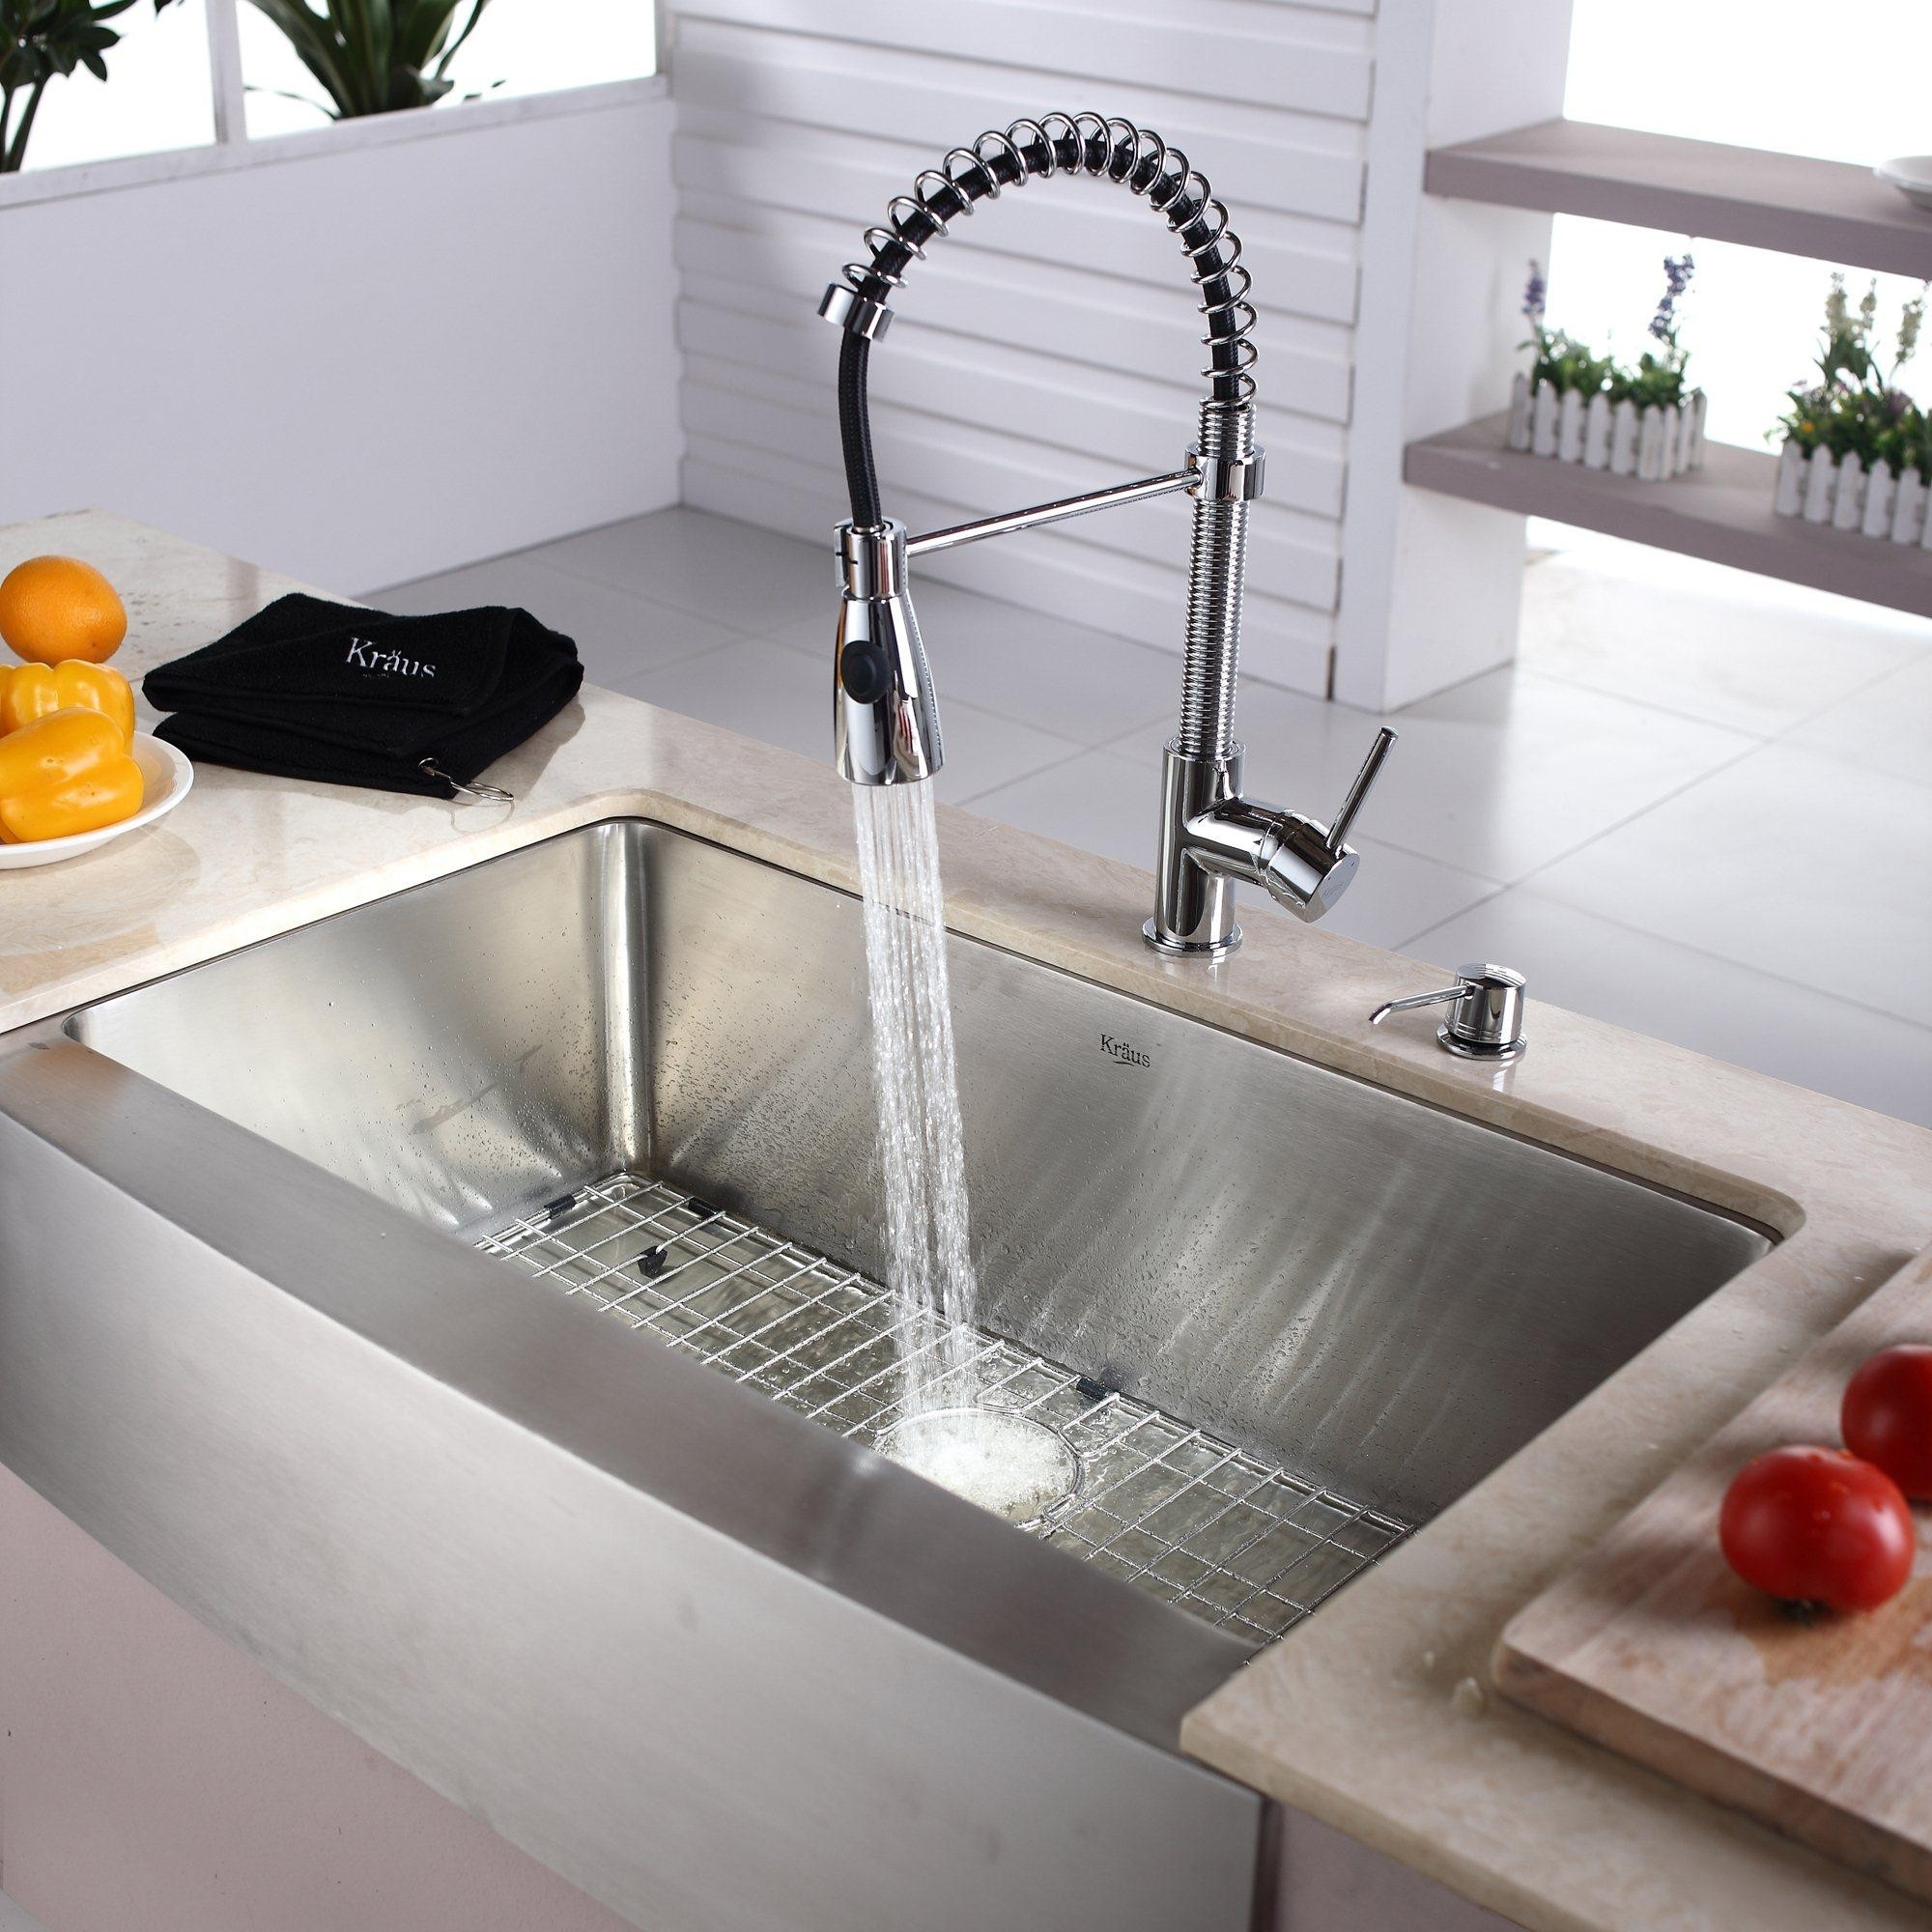 Ideas, stainless steel farmhouse sink with faucet holes stainless steel farmhouse sink with faucet holes dining kitchen make your kitchen looks elegant with lavish 2000 x 2000  .